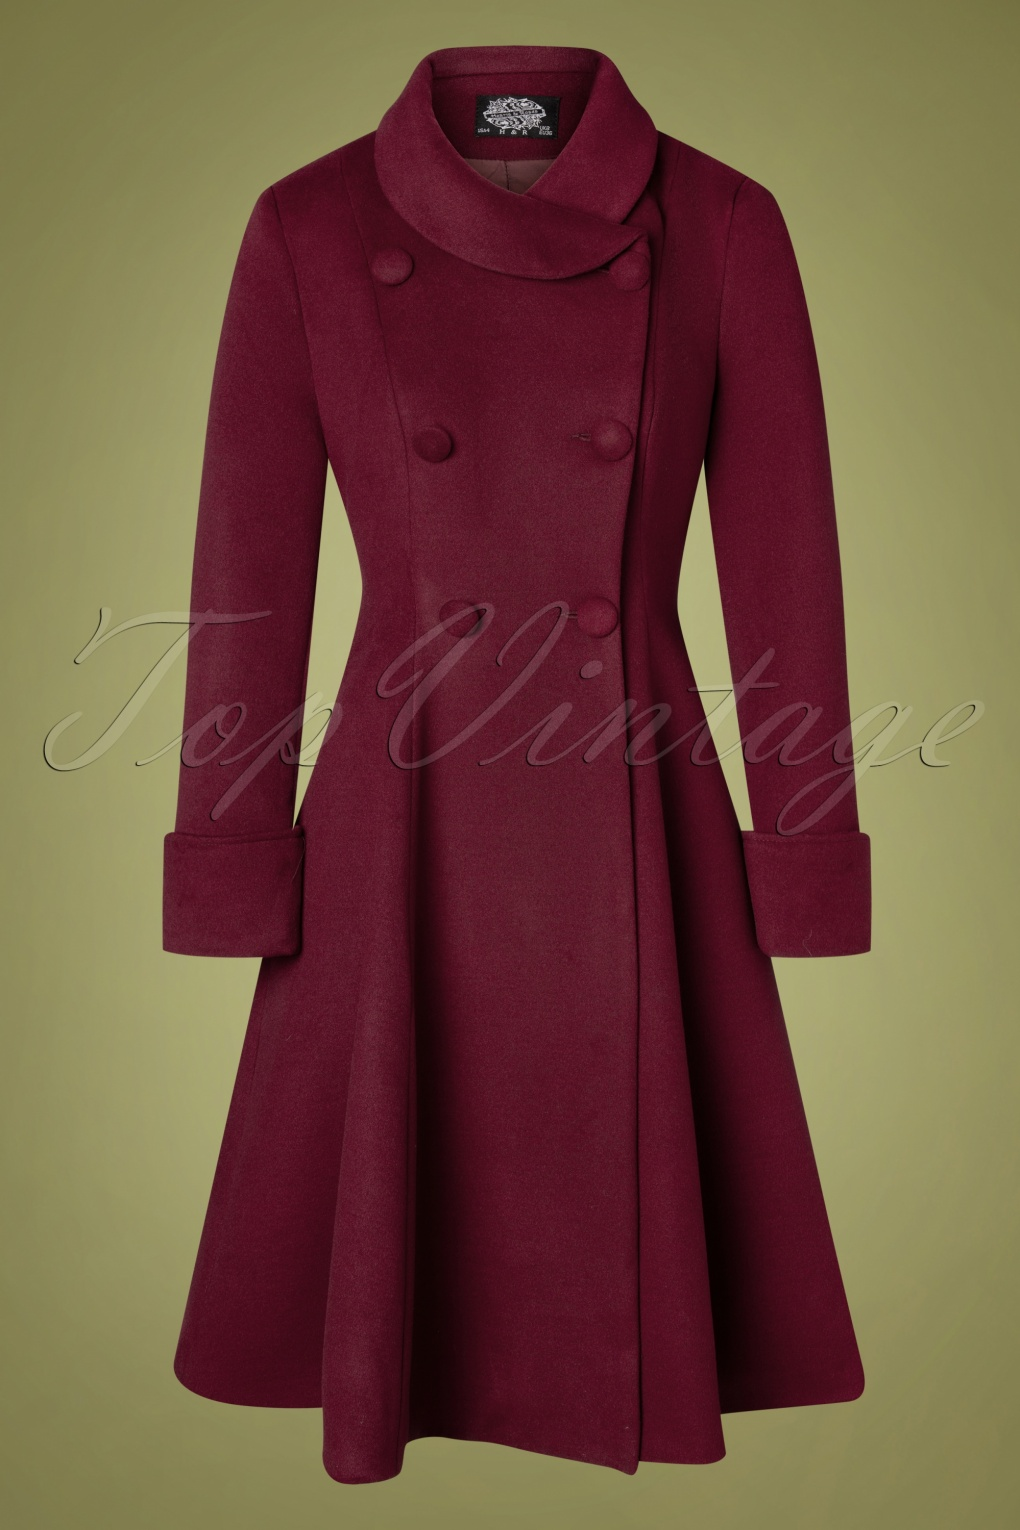 1950s Jackets, Coats, Bolero | Swing, Pin Up, Rockabilly 50s Grace Swing Coat in Burgundy £68.15 AT vintagedancer.com